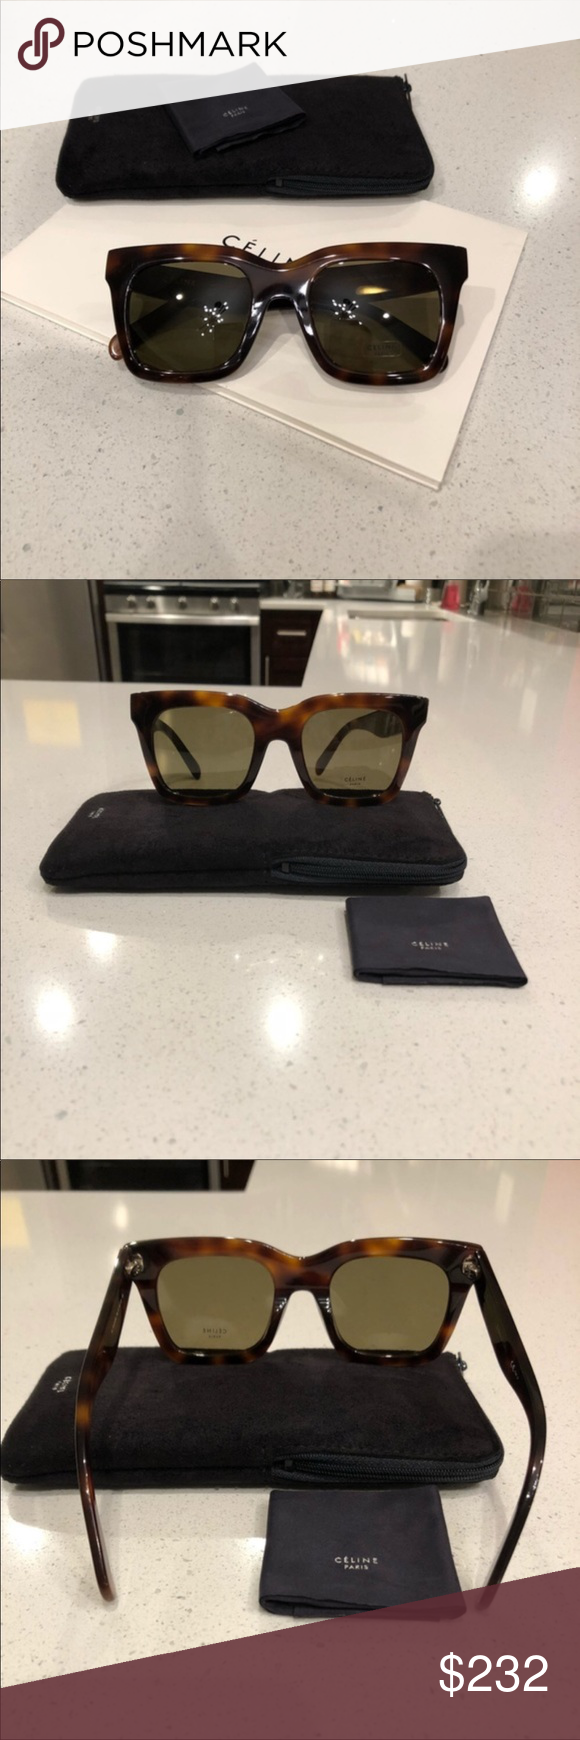 e44a2228fd8f Celine sunglasses 😎 Celine Luca Havana green sunglasses New